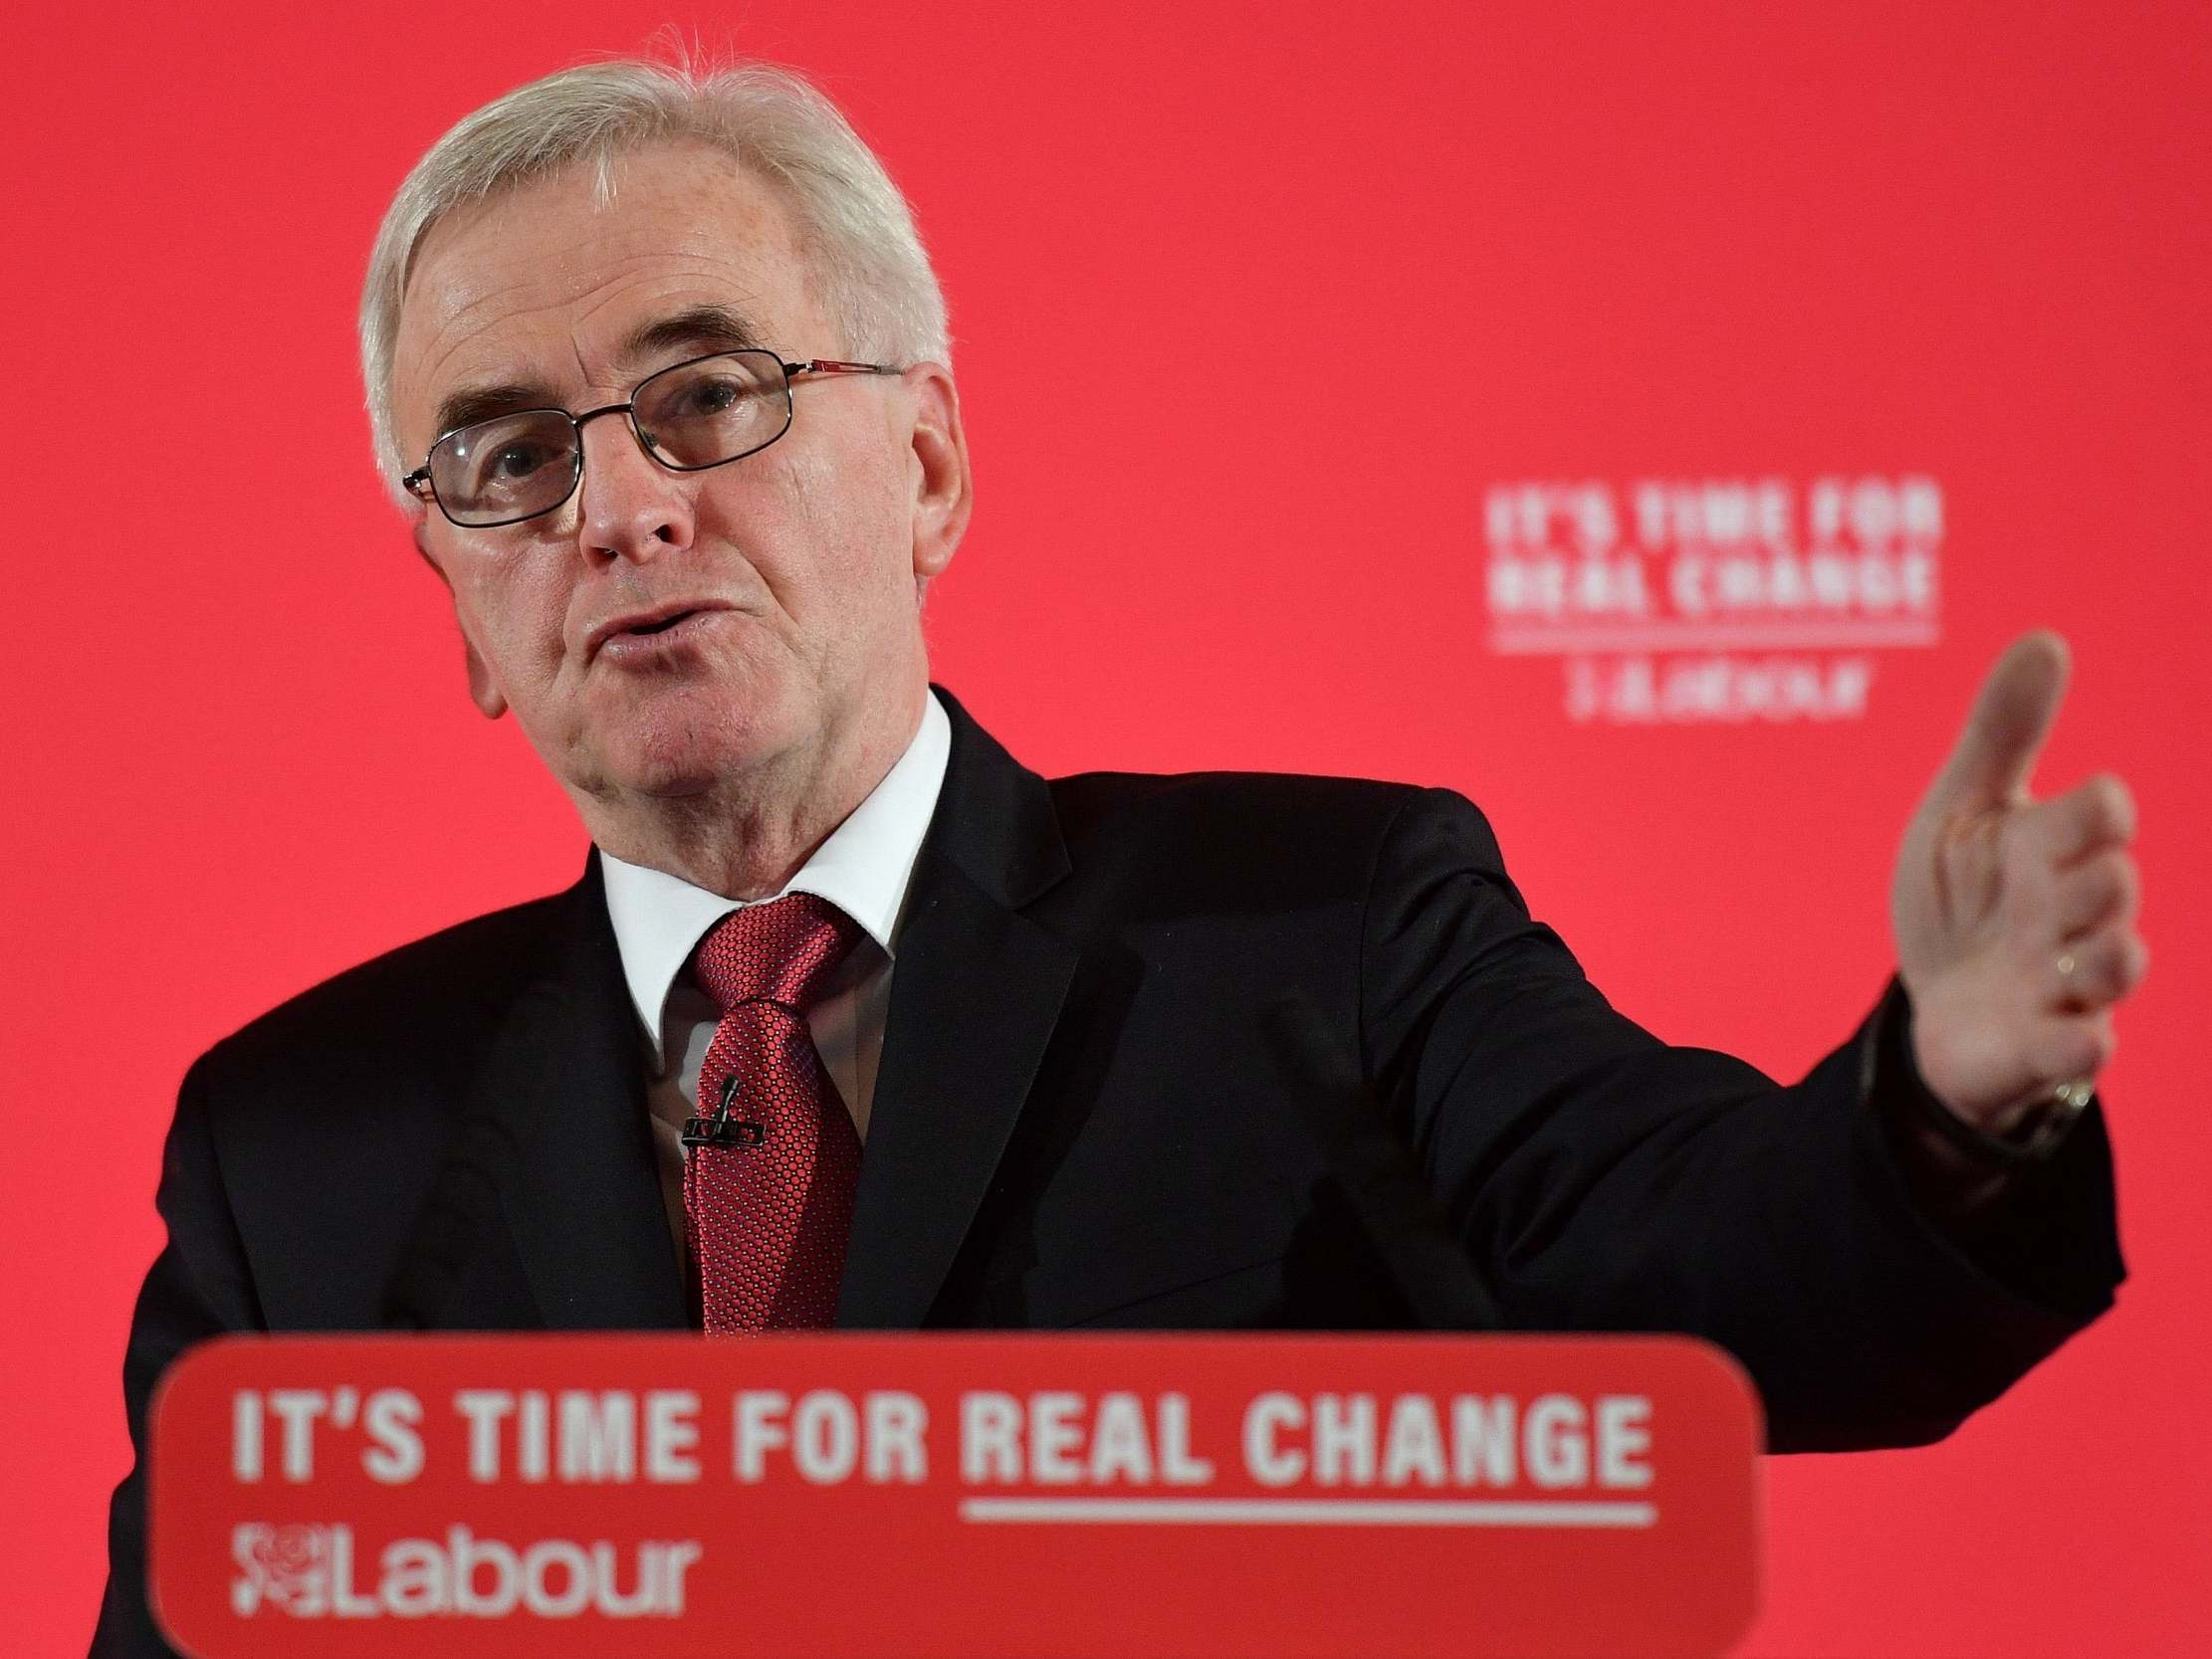 john mcdonnell - Labour pledges £58bn to compensate women hit by pension age rise